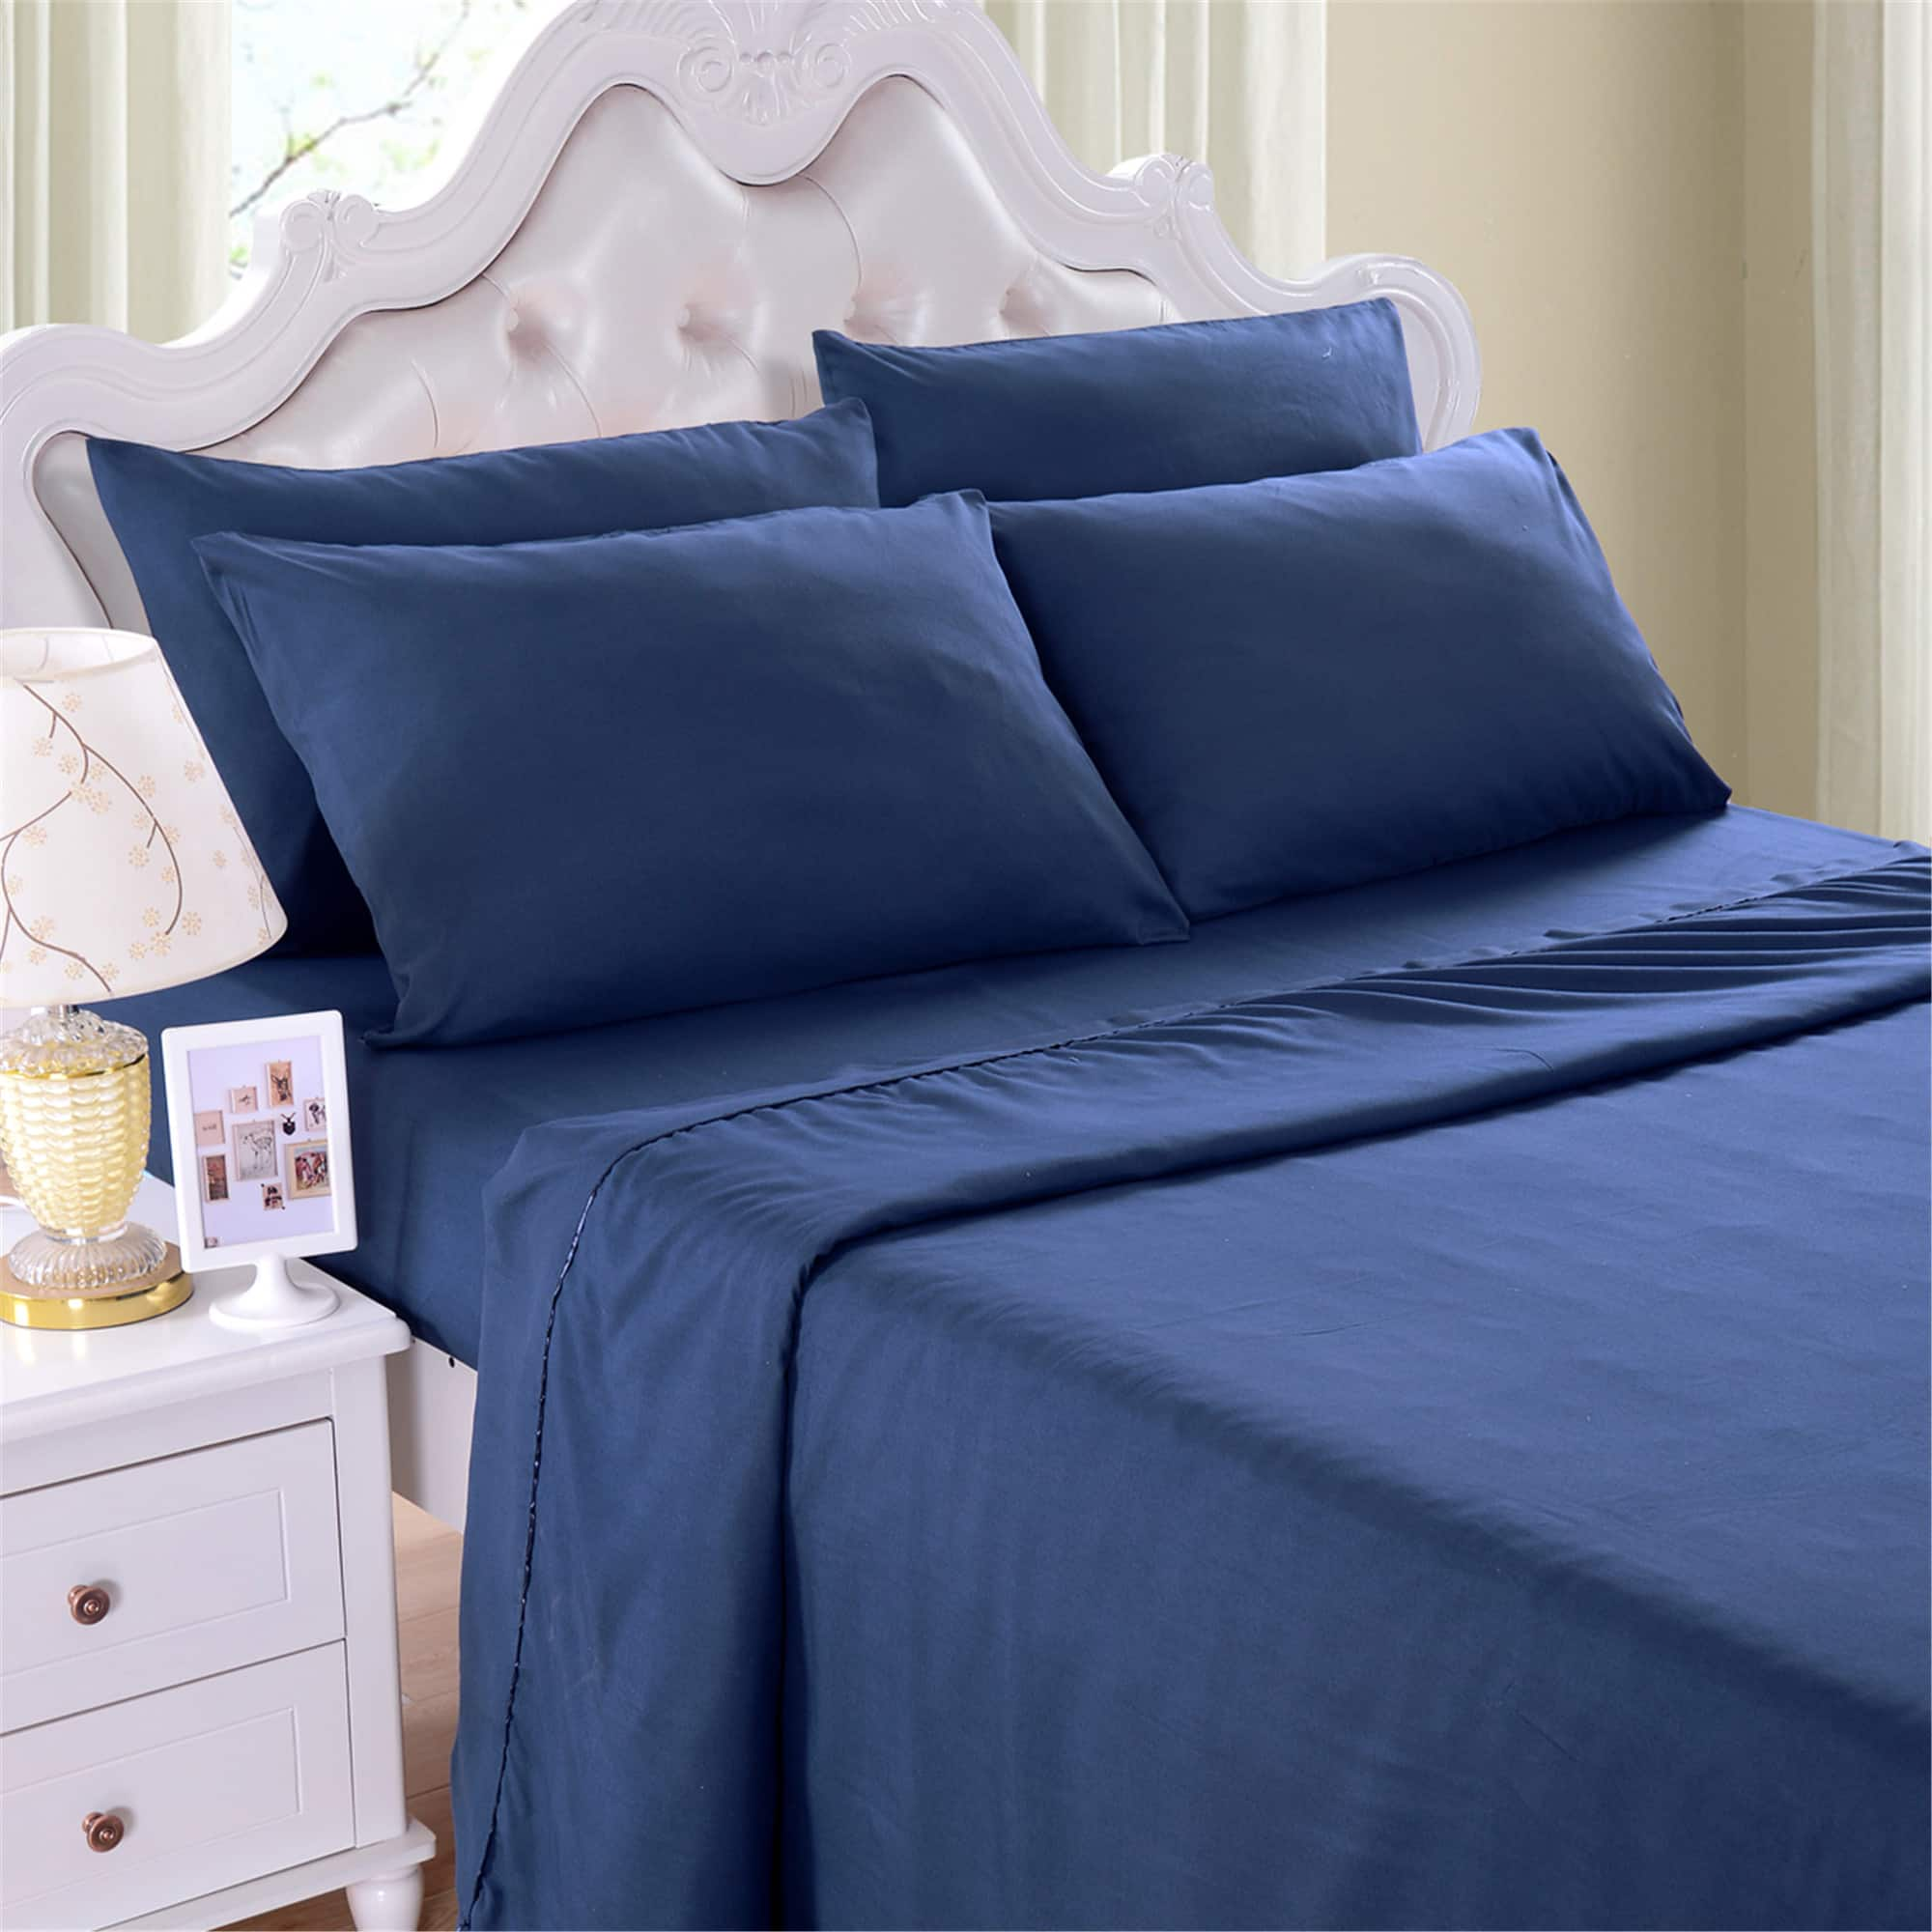 "6 Pieces Bed Sheet Set,18"" Deep Pocket, Brushed Microfiber ,Wrinkle & Fade Resistant Bed Sheet, Very Soft, Elegant Sheets Set For Perfect Sleep (Queen Size, Navy) $14.29"